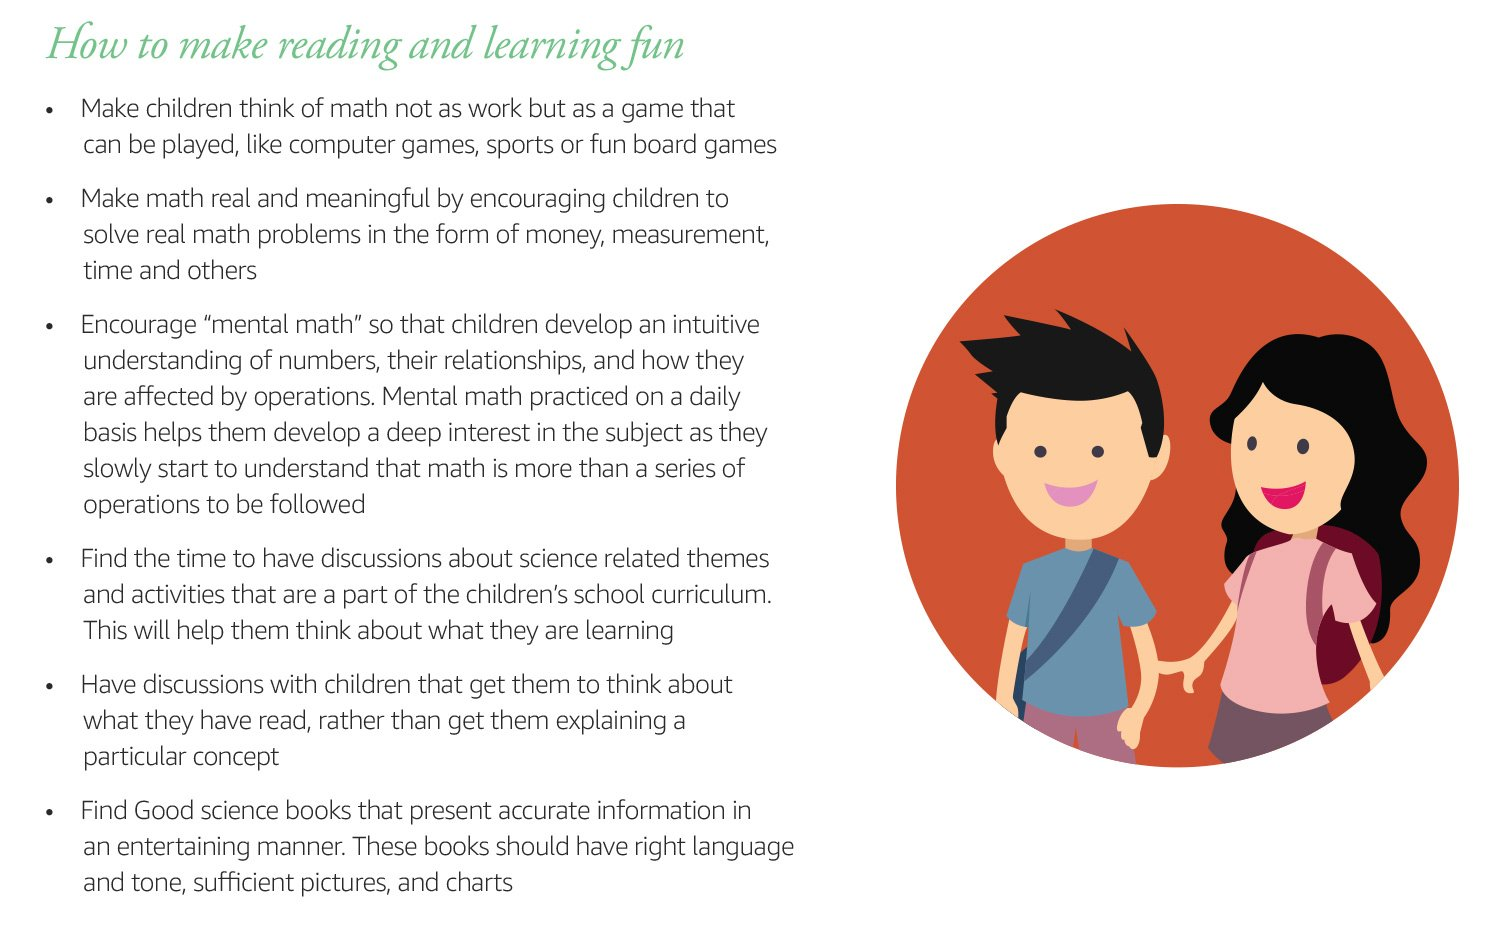 How to make reading and learning fun